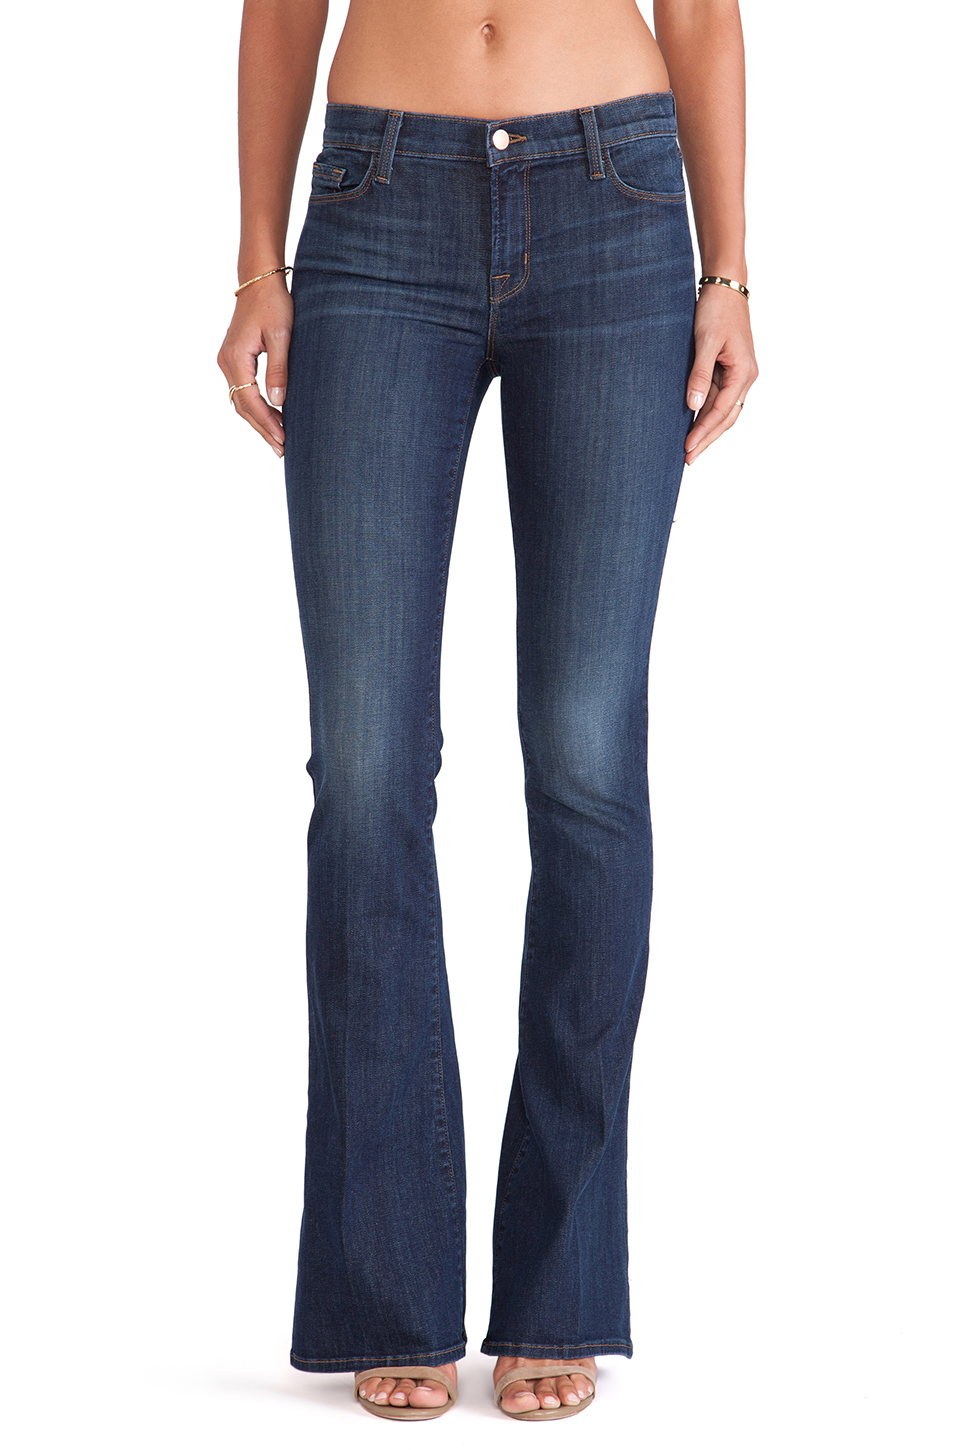 tanger outlets saks off fifth dark wash flare jeans